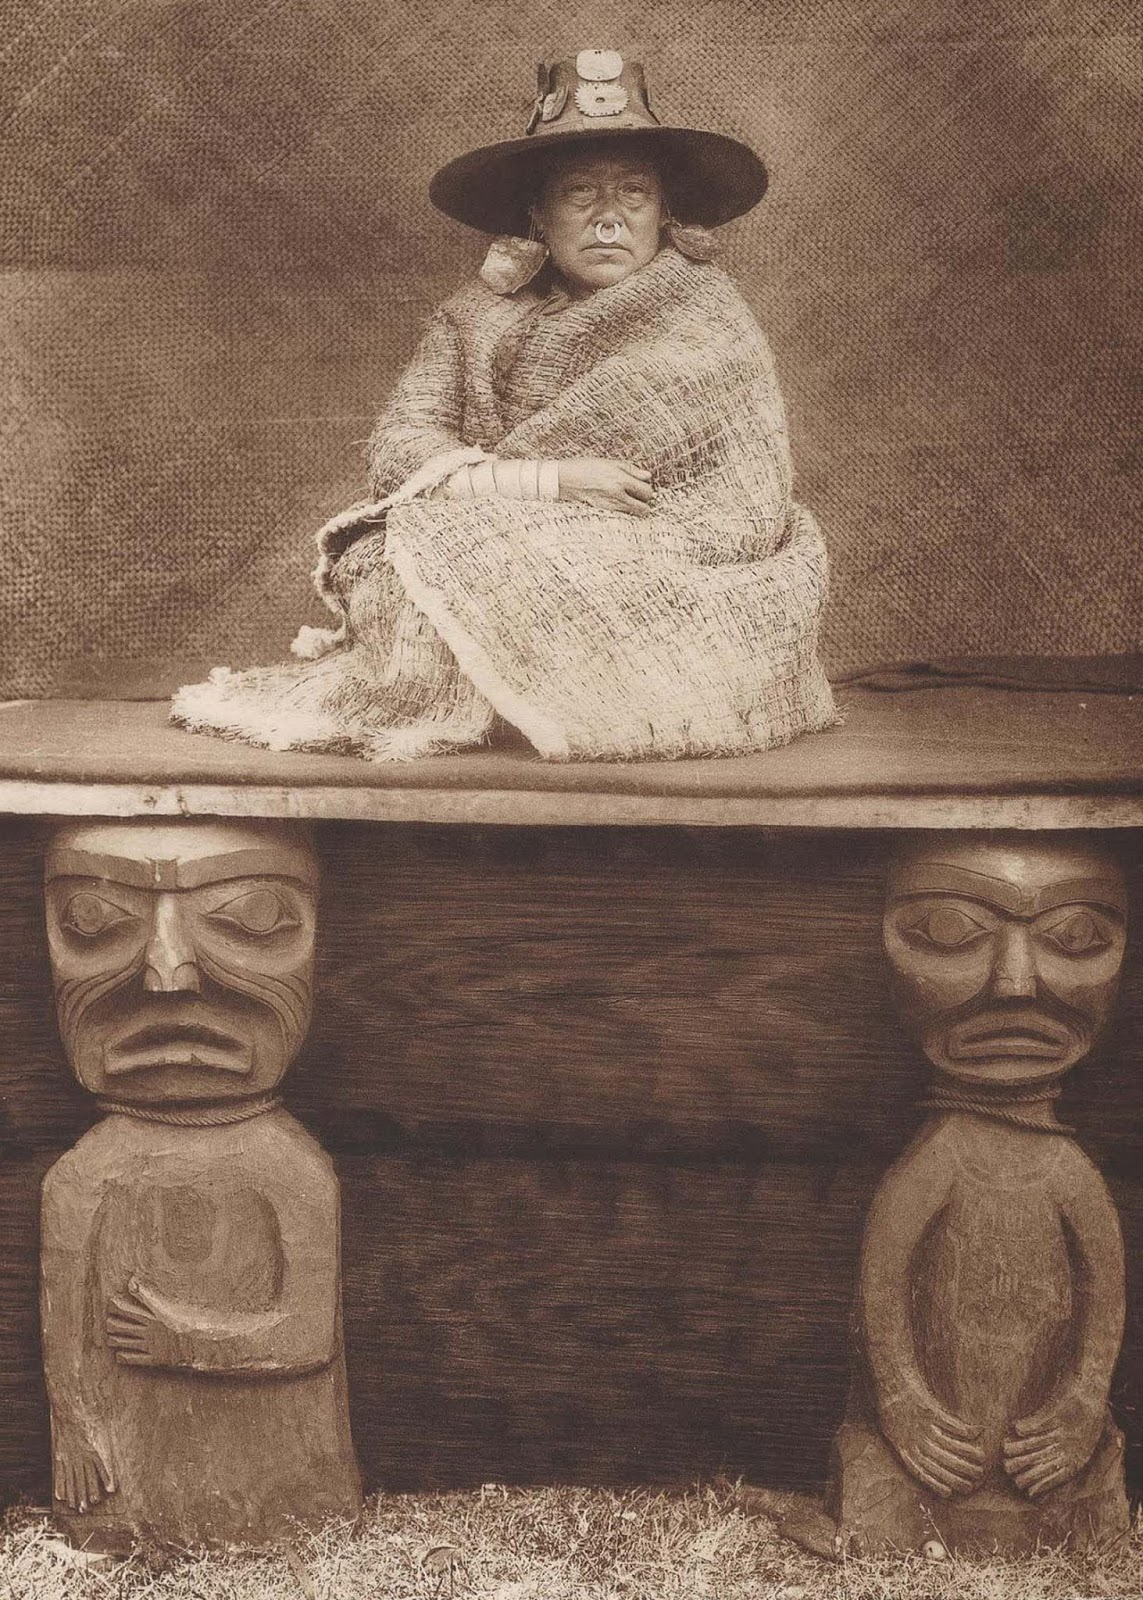 A Kwakiutl chief's daughter. 1910.